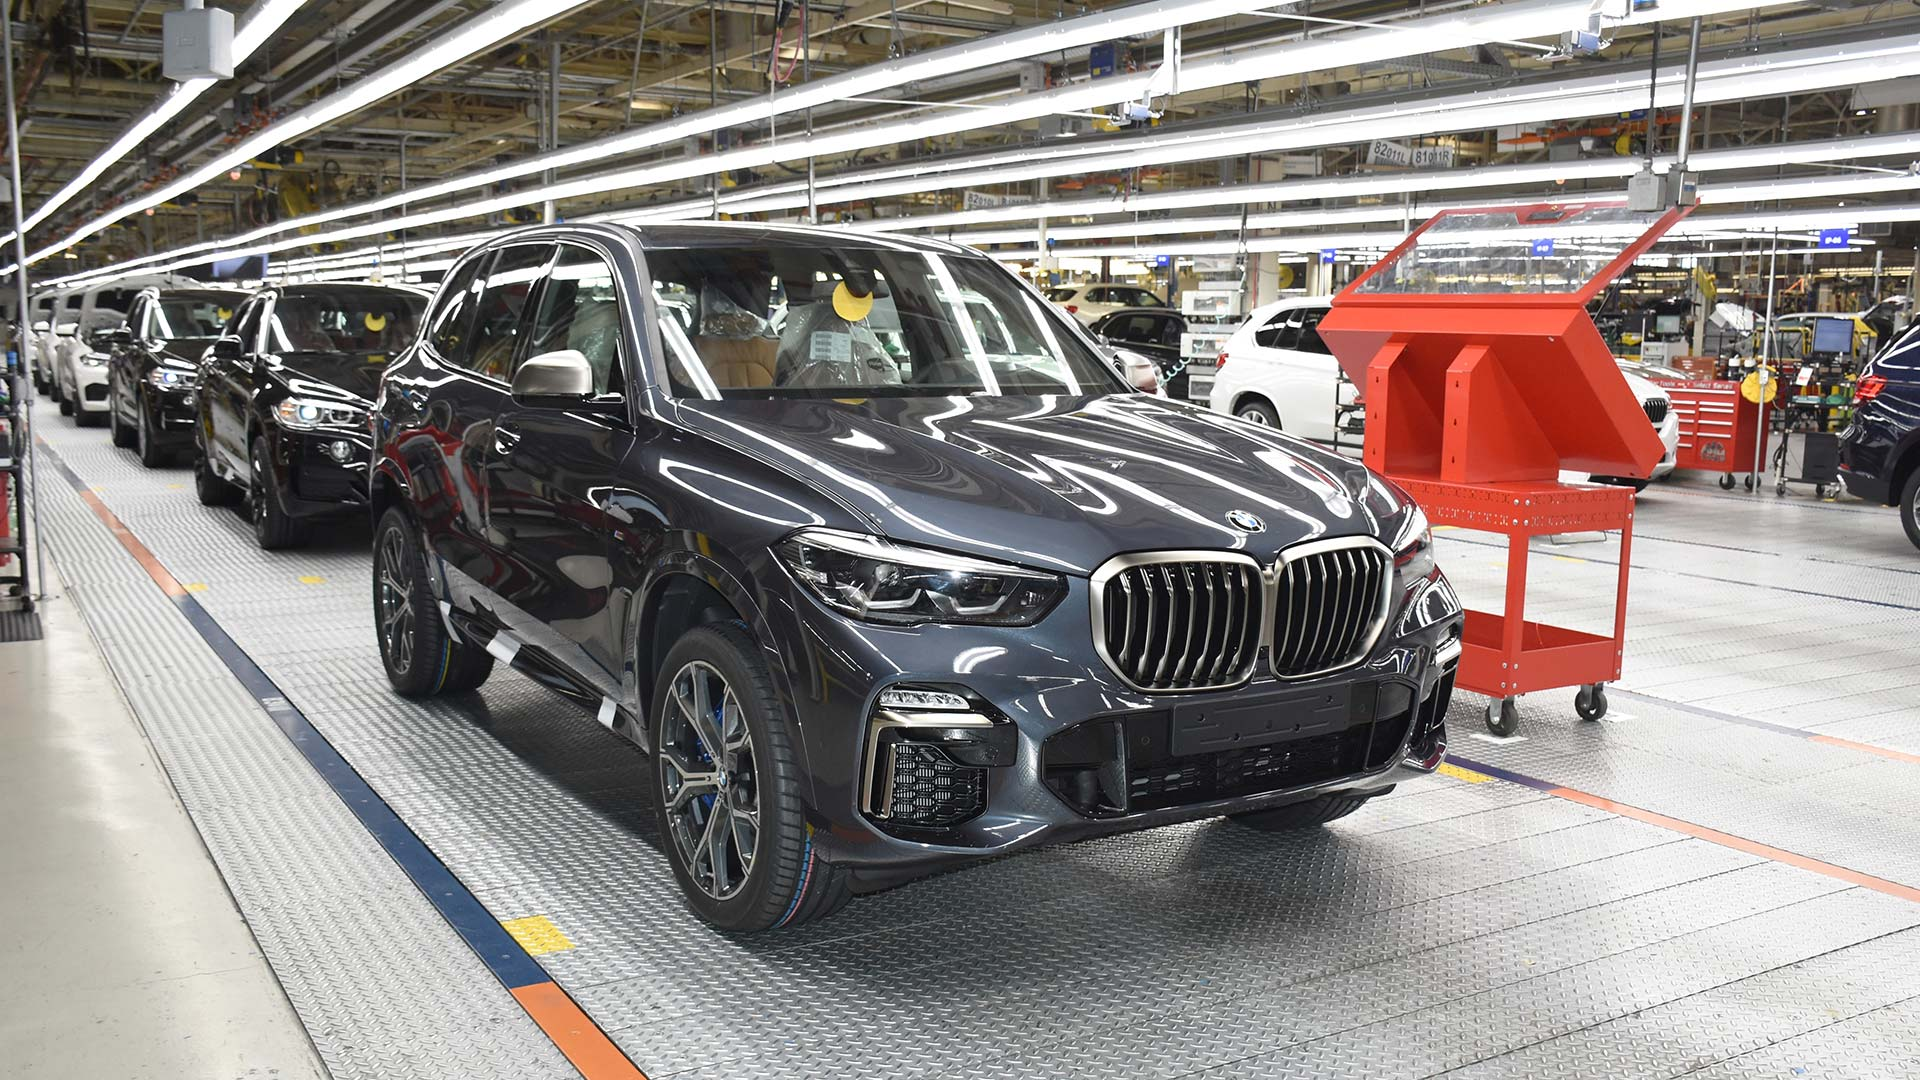 BMW adds extra battery capacity to US plant